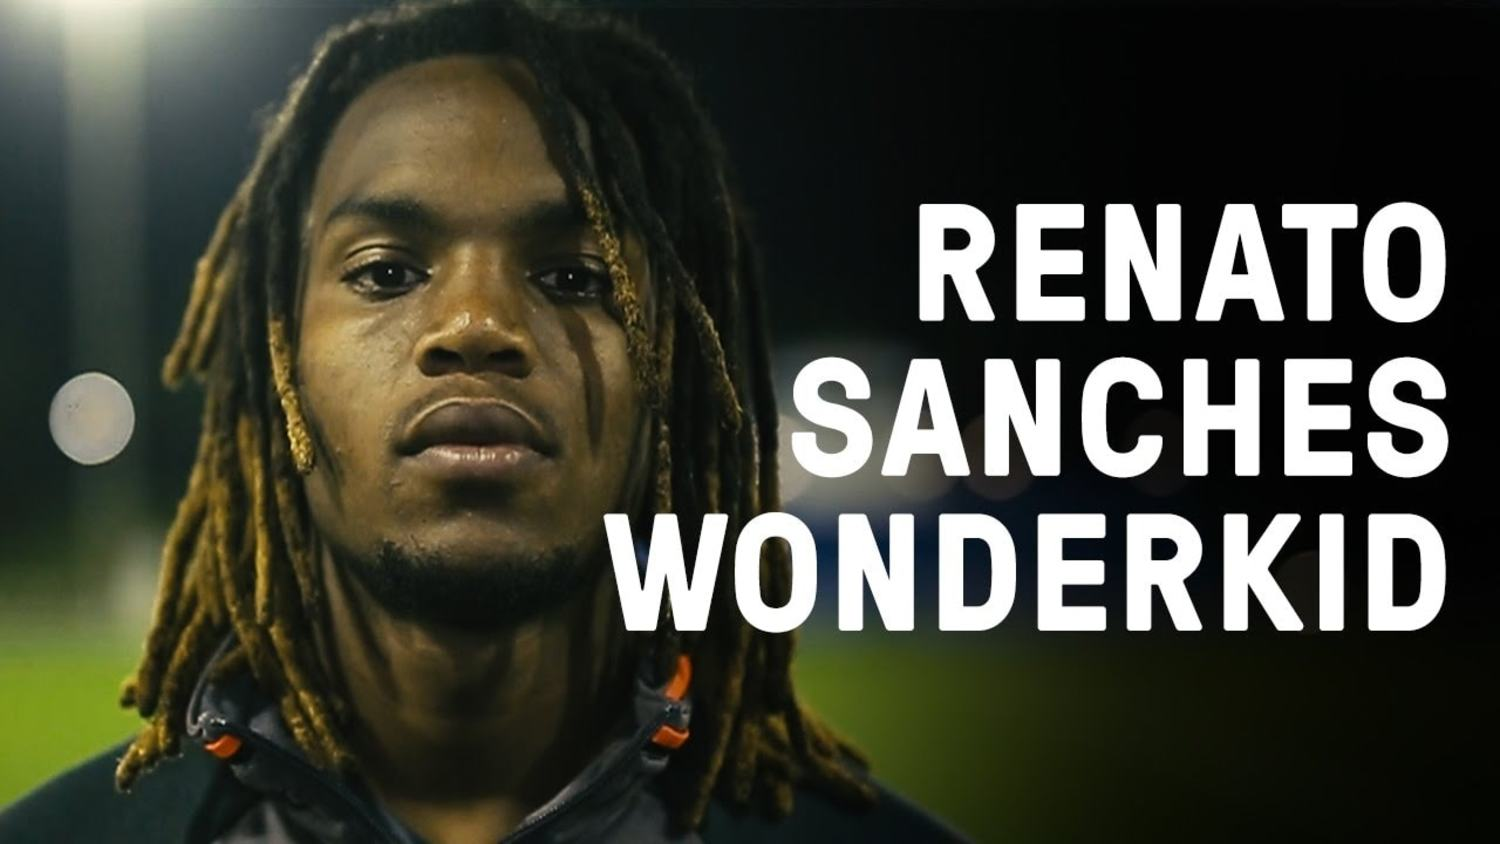 Will Renato Sanches Become The Best Player In The World?